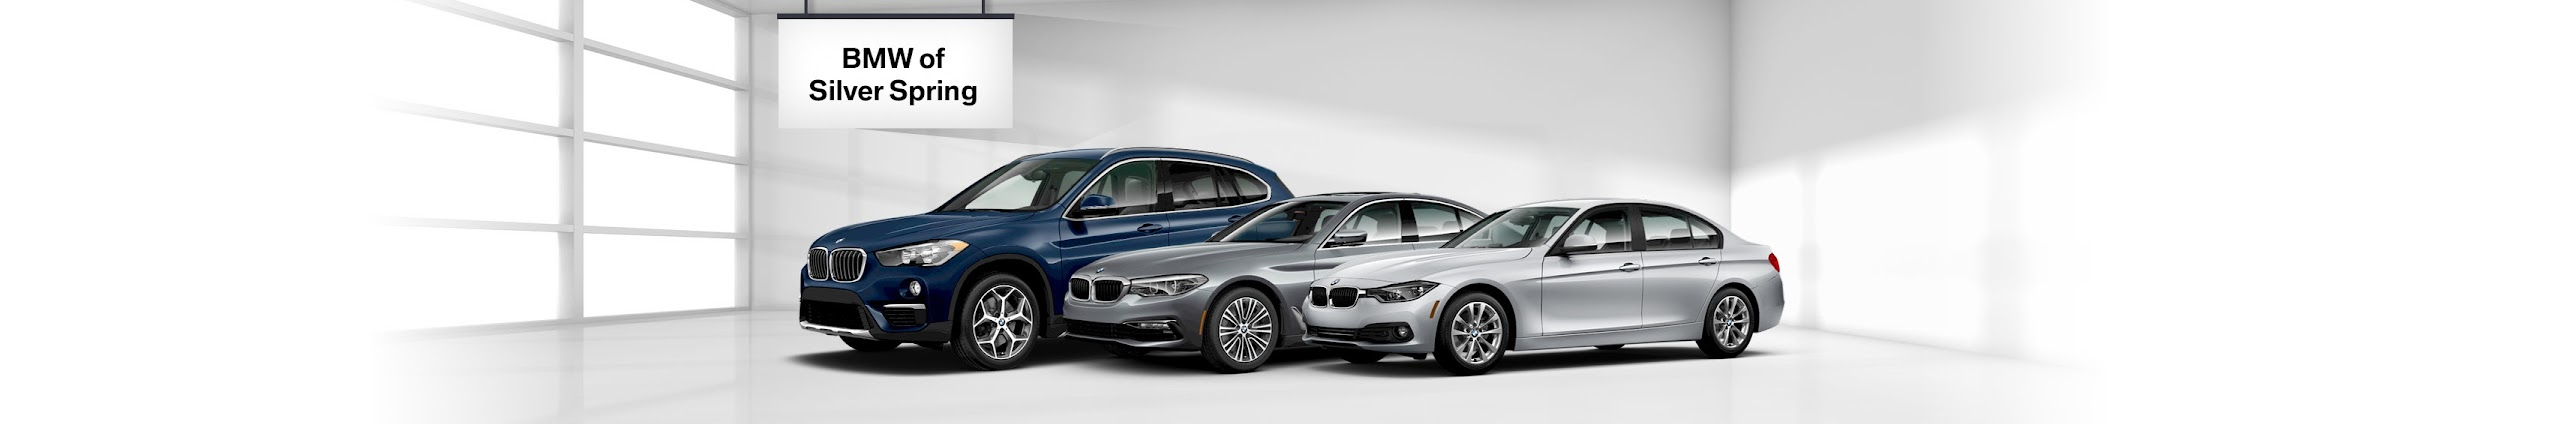 BMW Silver Spring >> Bmw Of Silver Spring Youtube